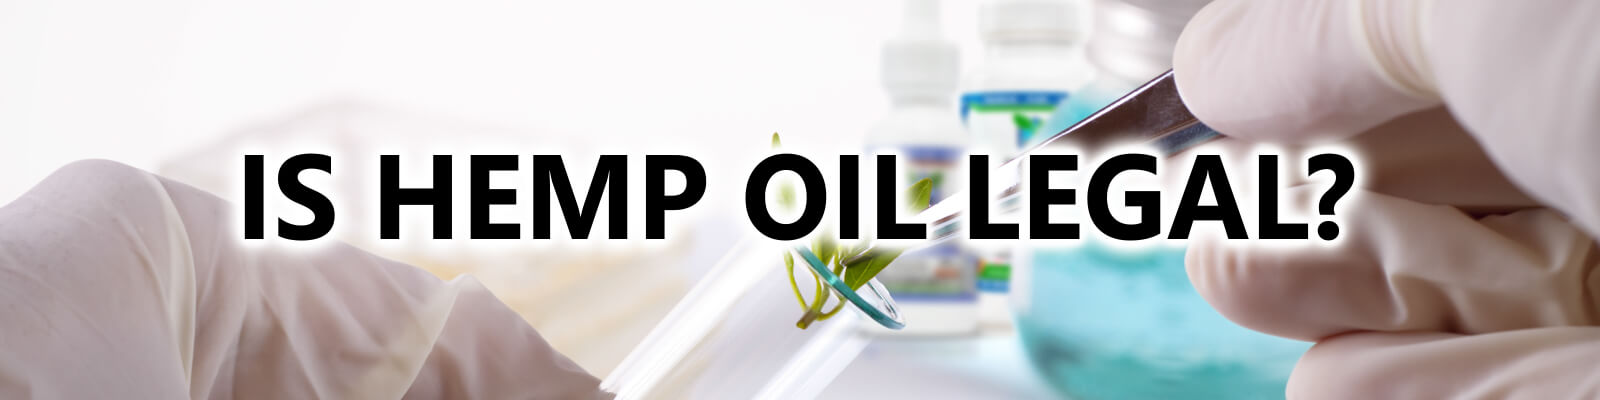 scientist putting plant into a tube is hemp oil legal